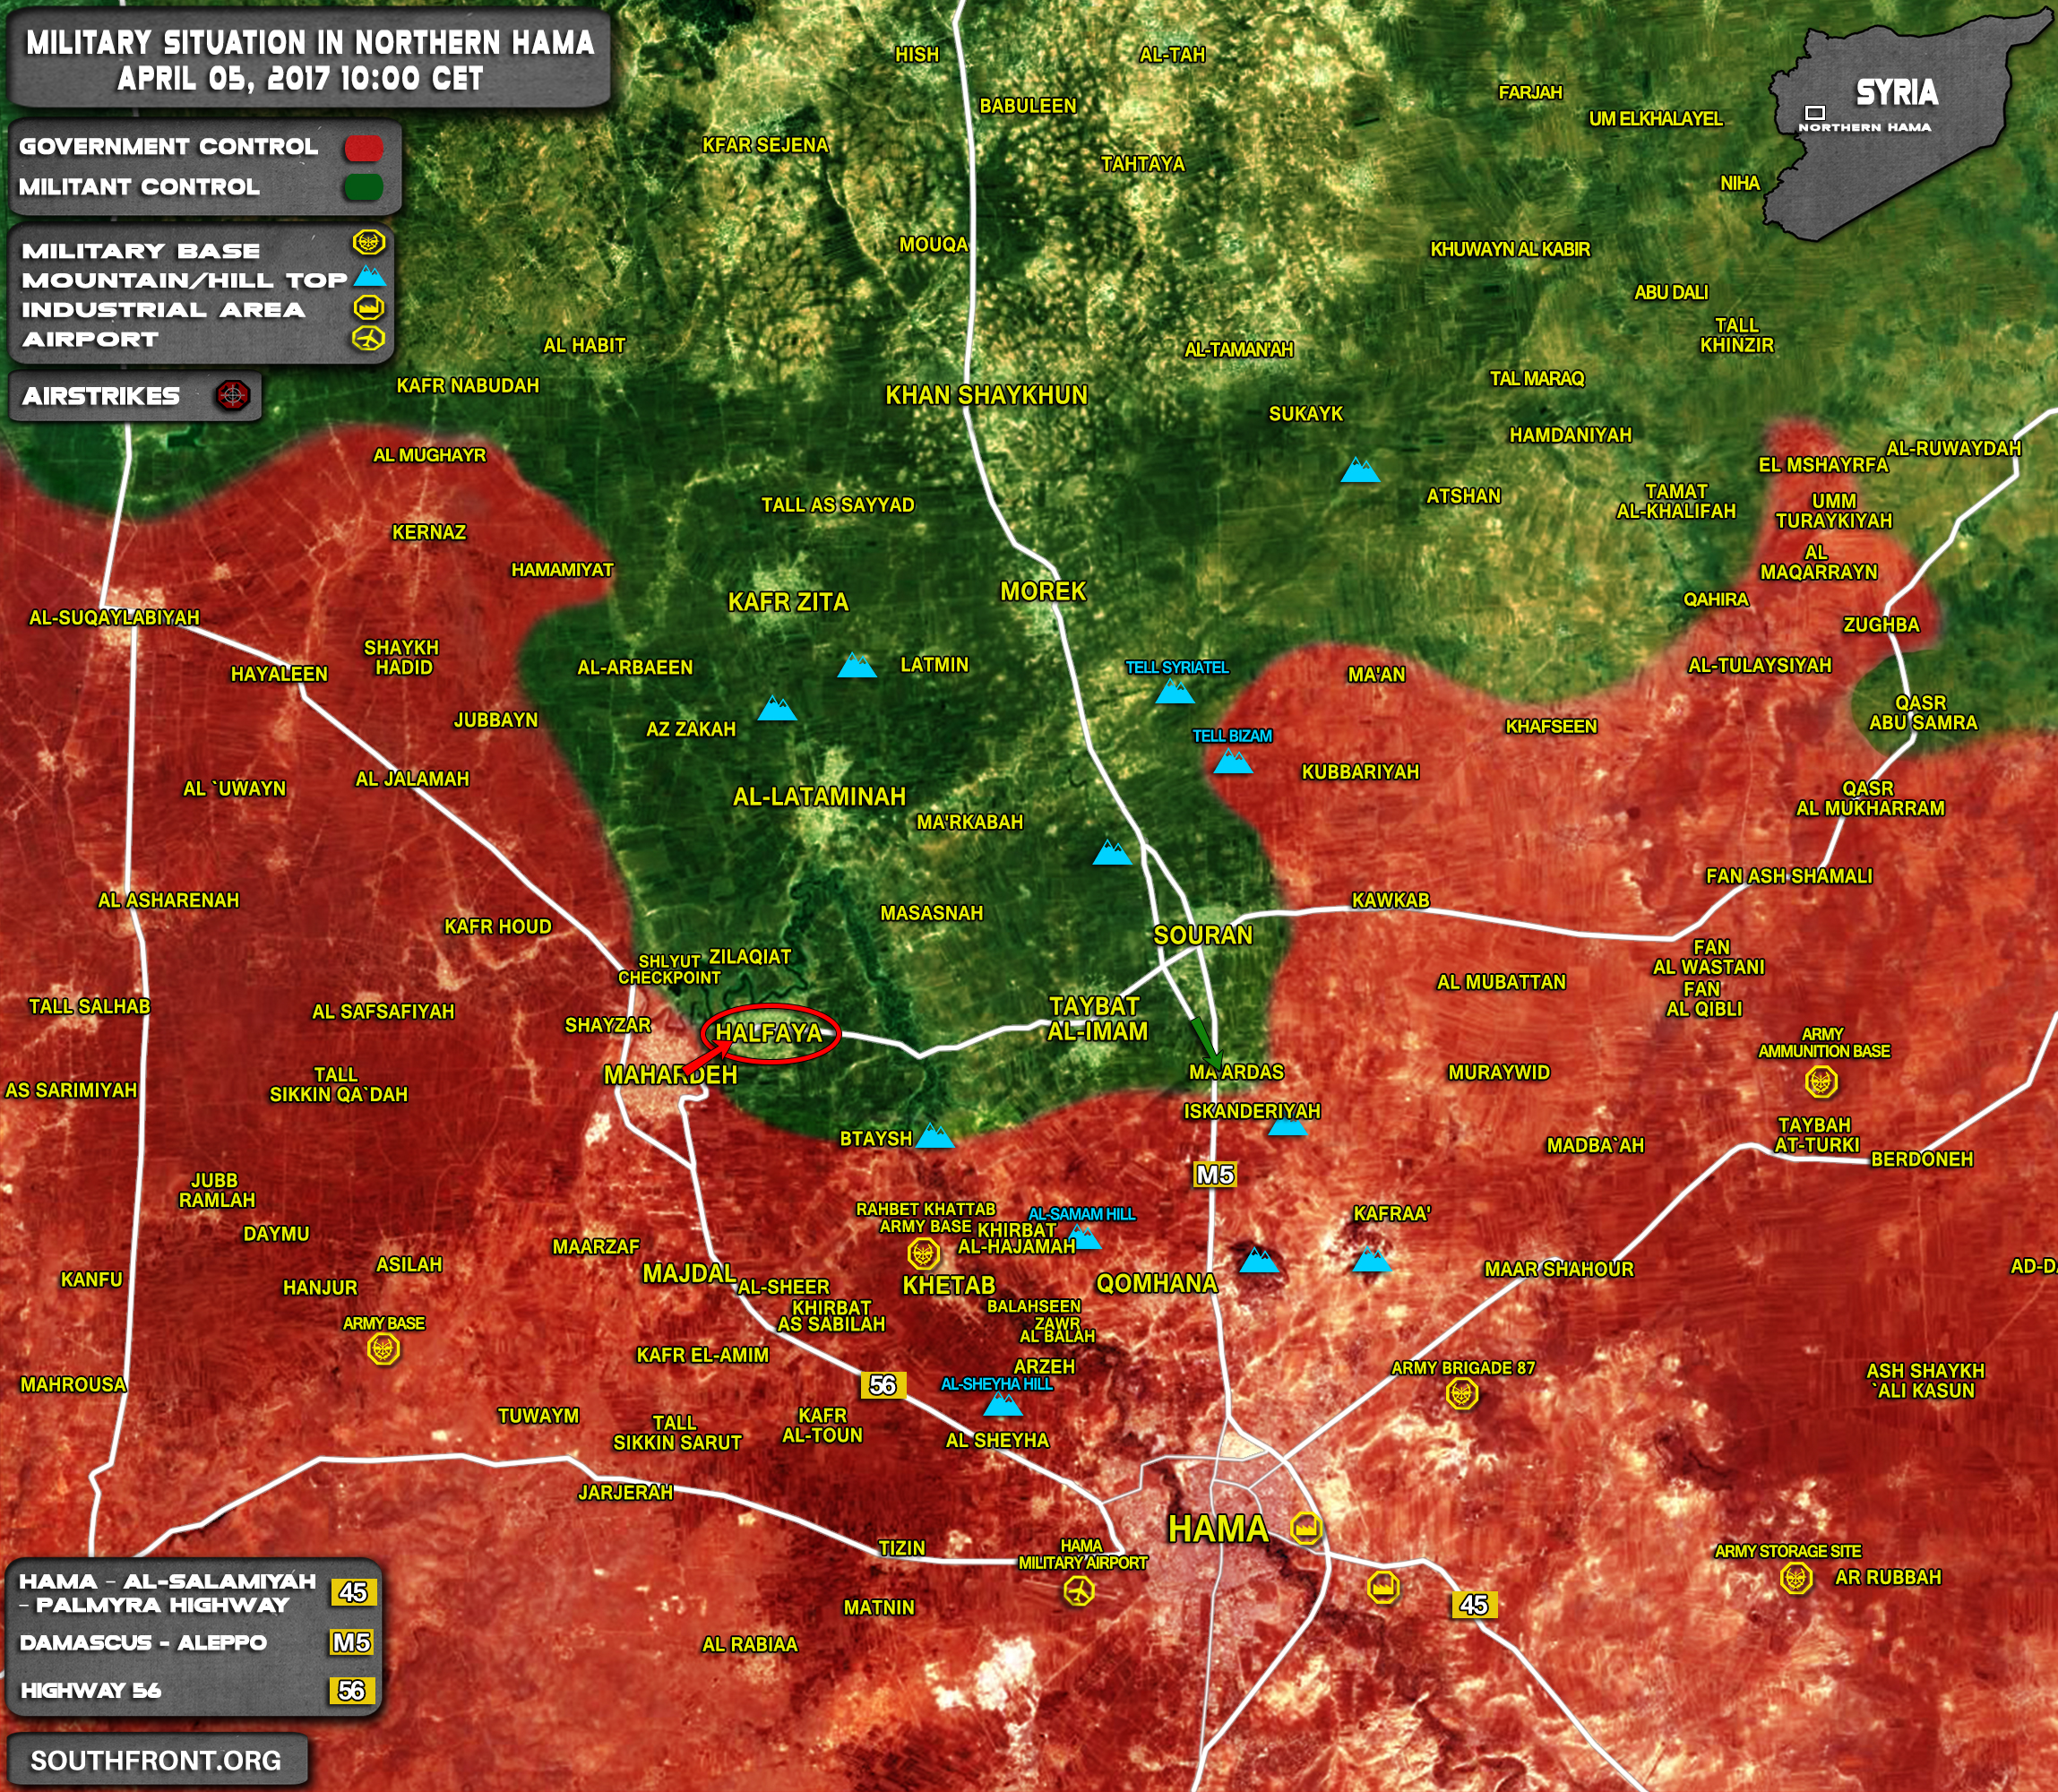 Pro-Government Forces Launch Surprise Counter-Attack In Northern Hama, Enter Strategic Town (Map, Videos)